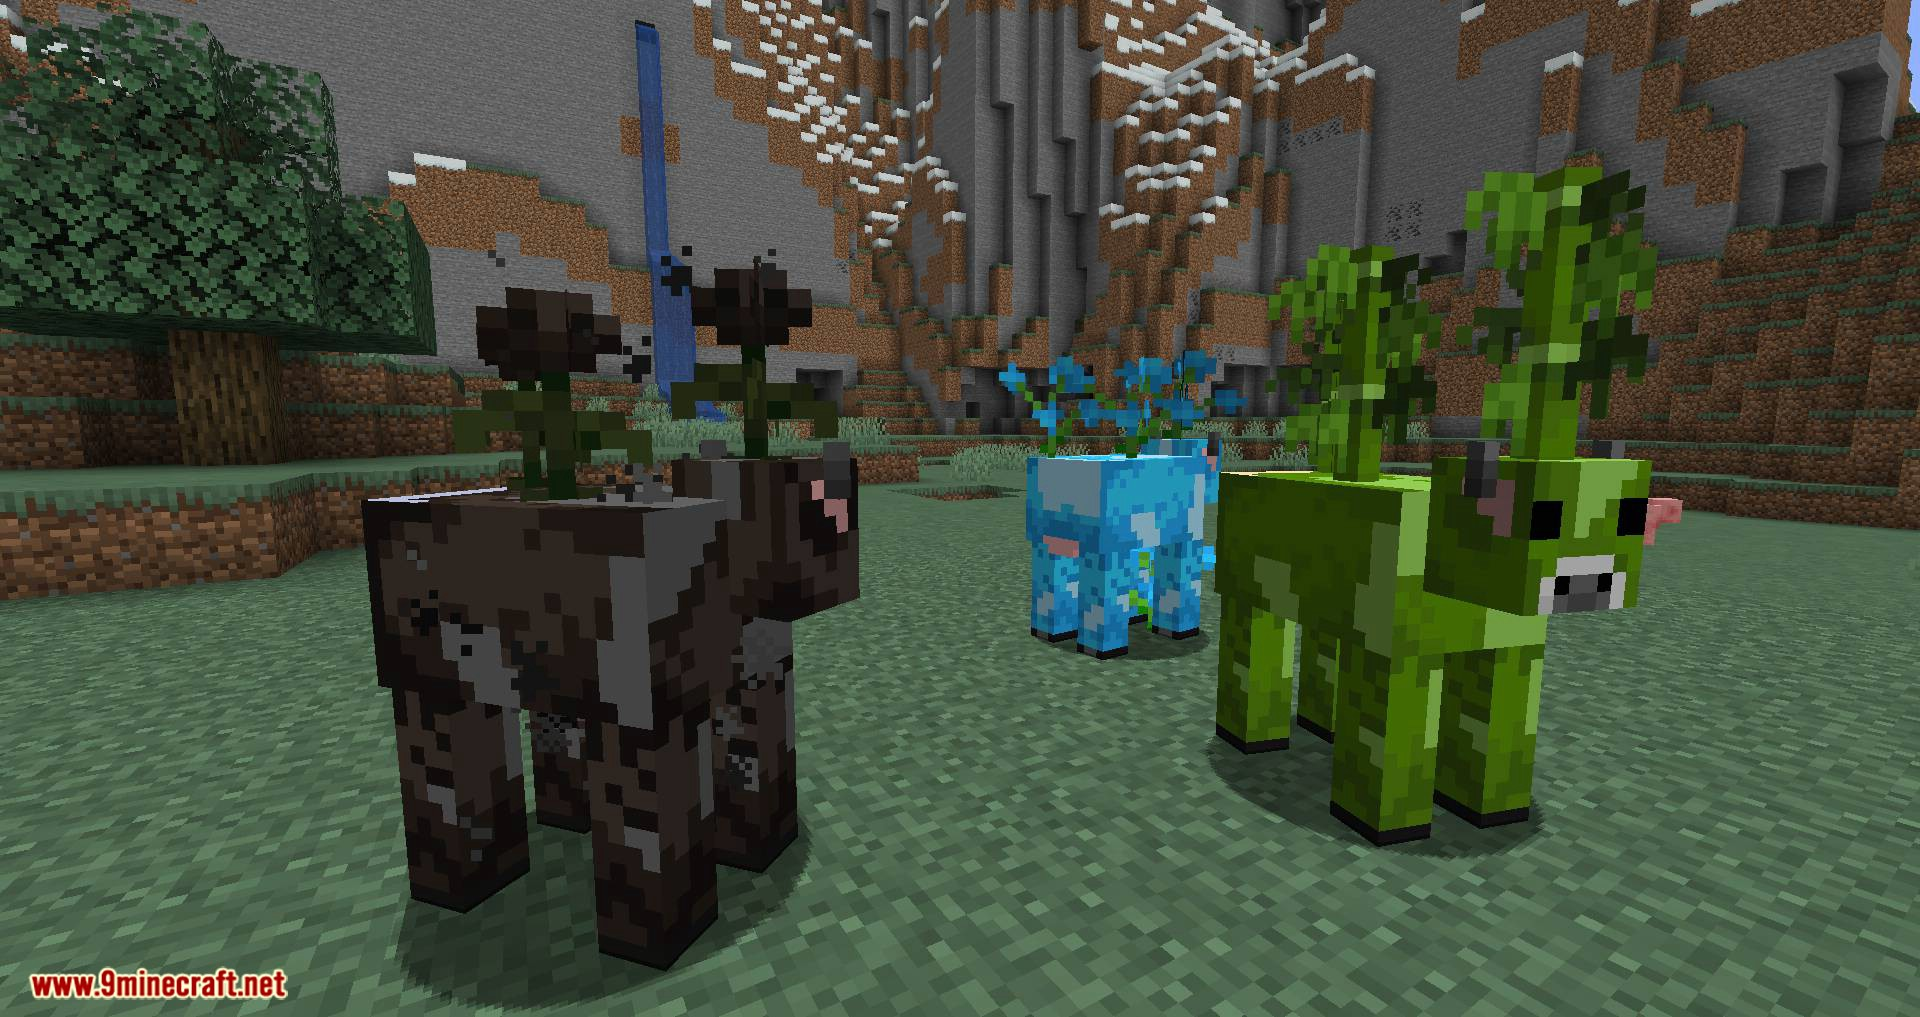 Mooblooms mod for minecraft 05